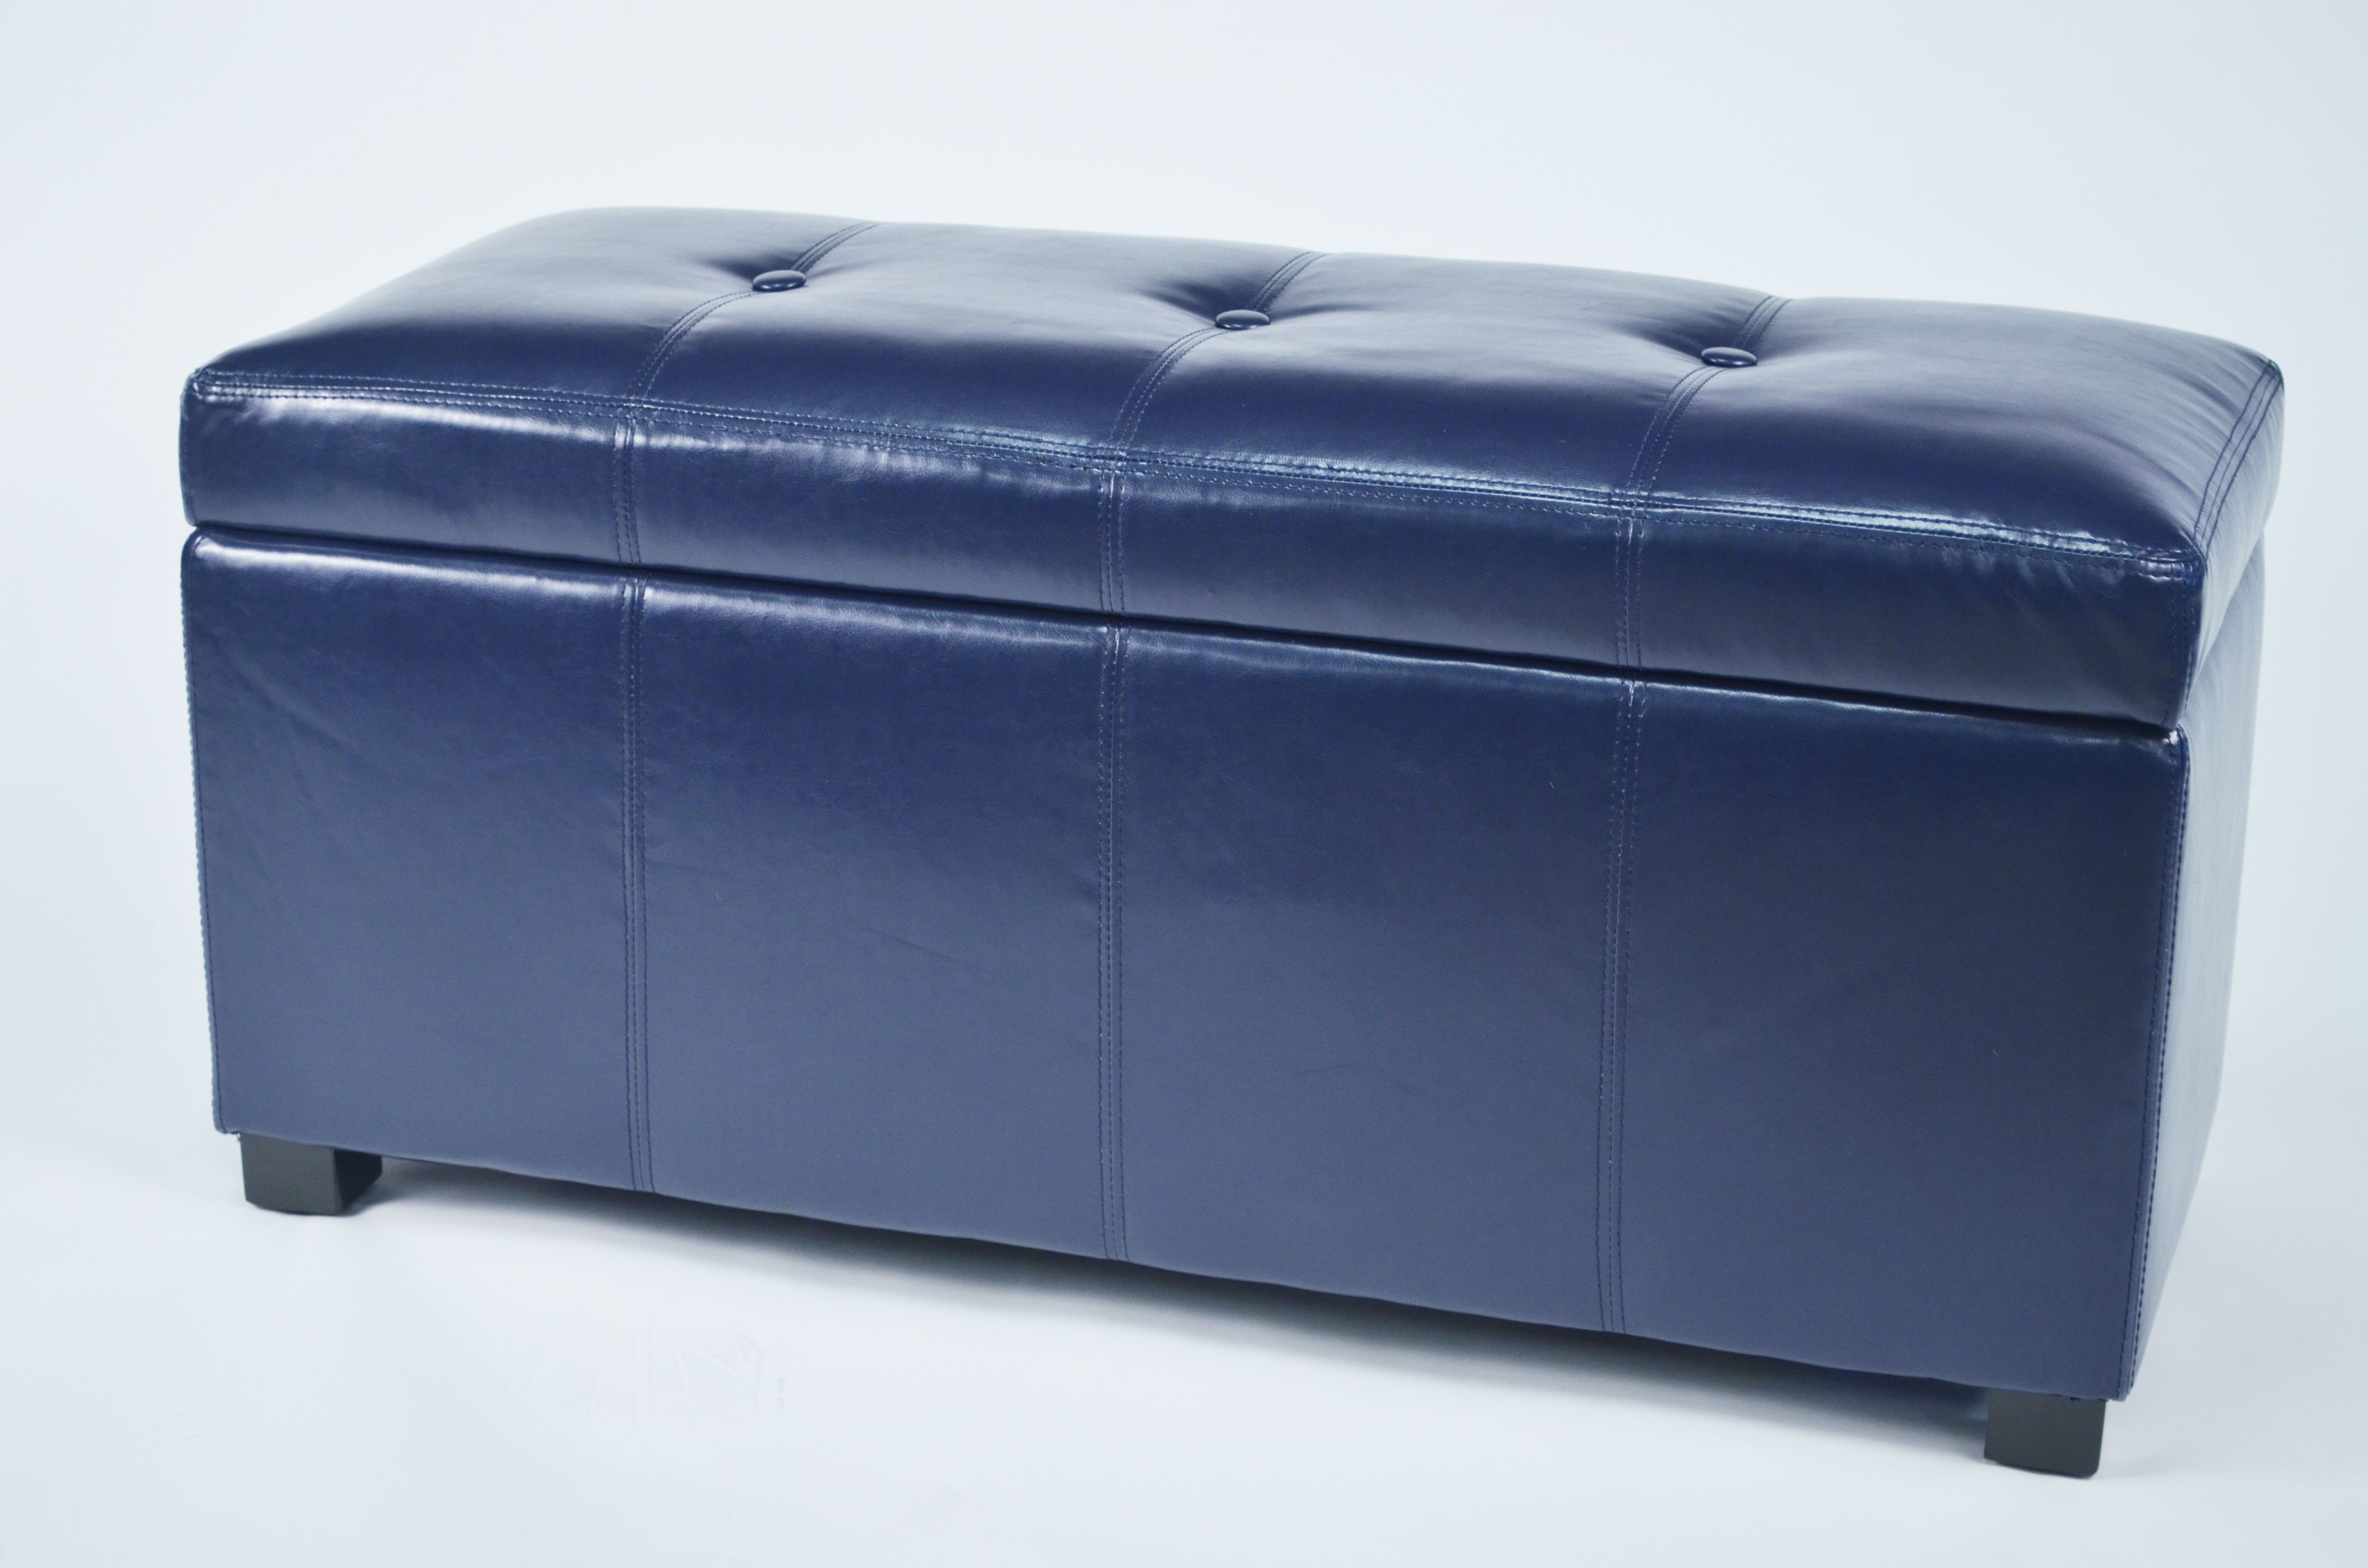 Ariel Dark Blue Faux Leather Tufted Storage Bench From Warehouse Of Tiffany Wt M1157 Wb Drk